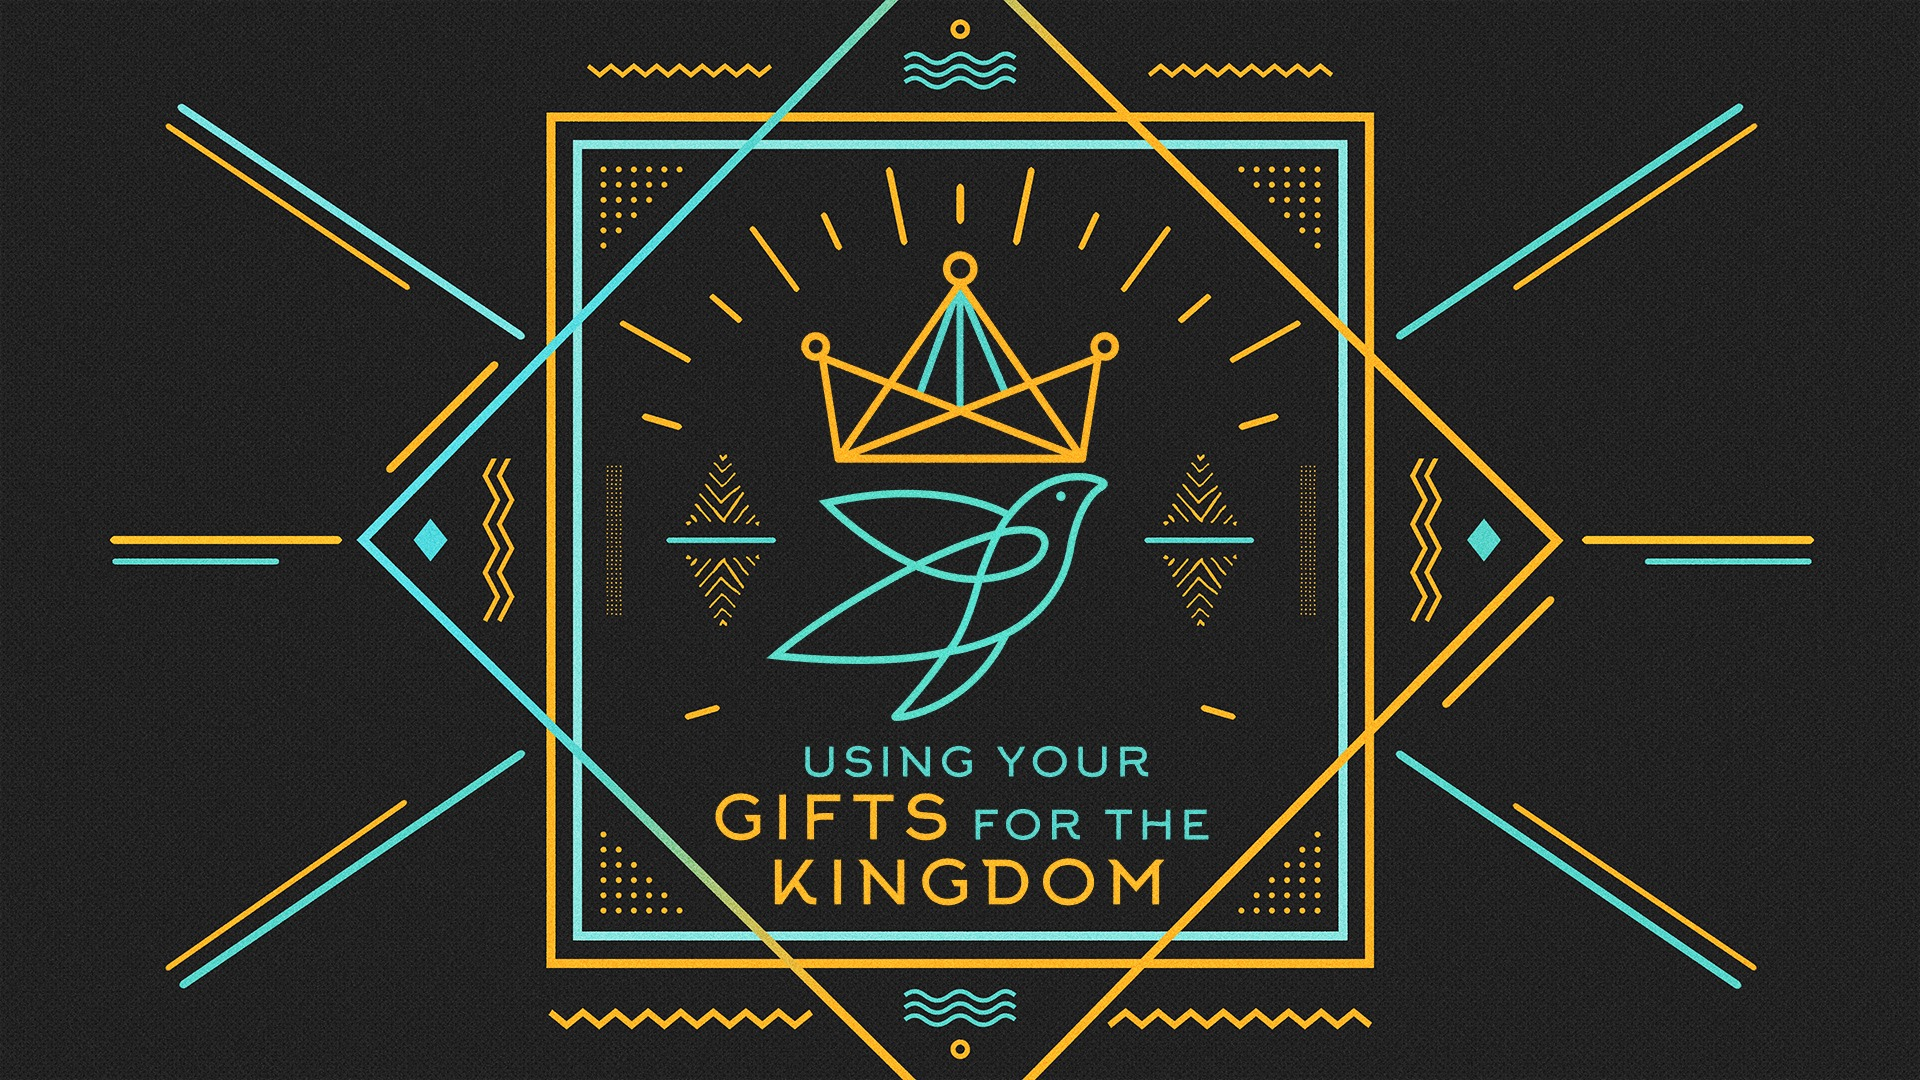 Using Your Gifts for the Kingdom